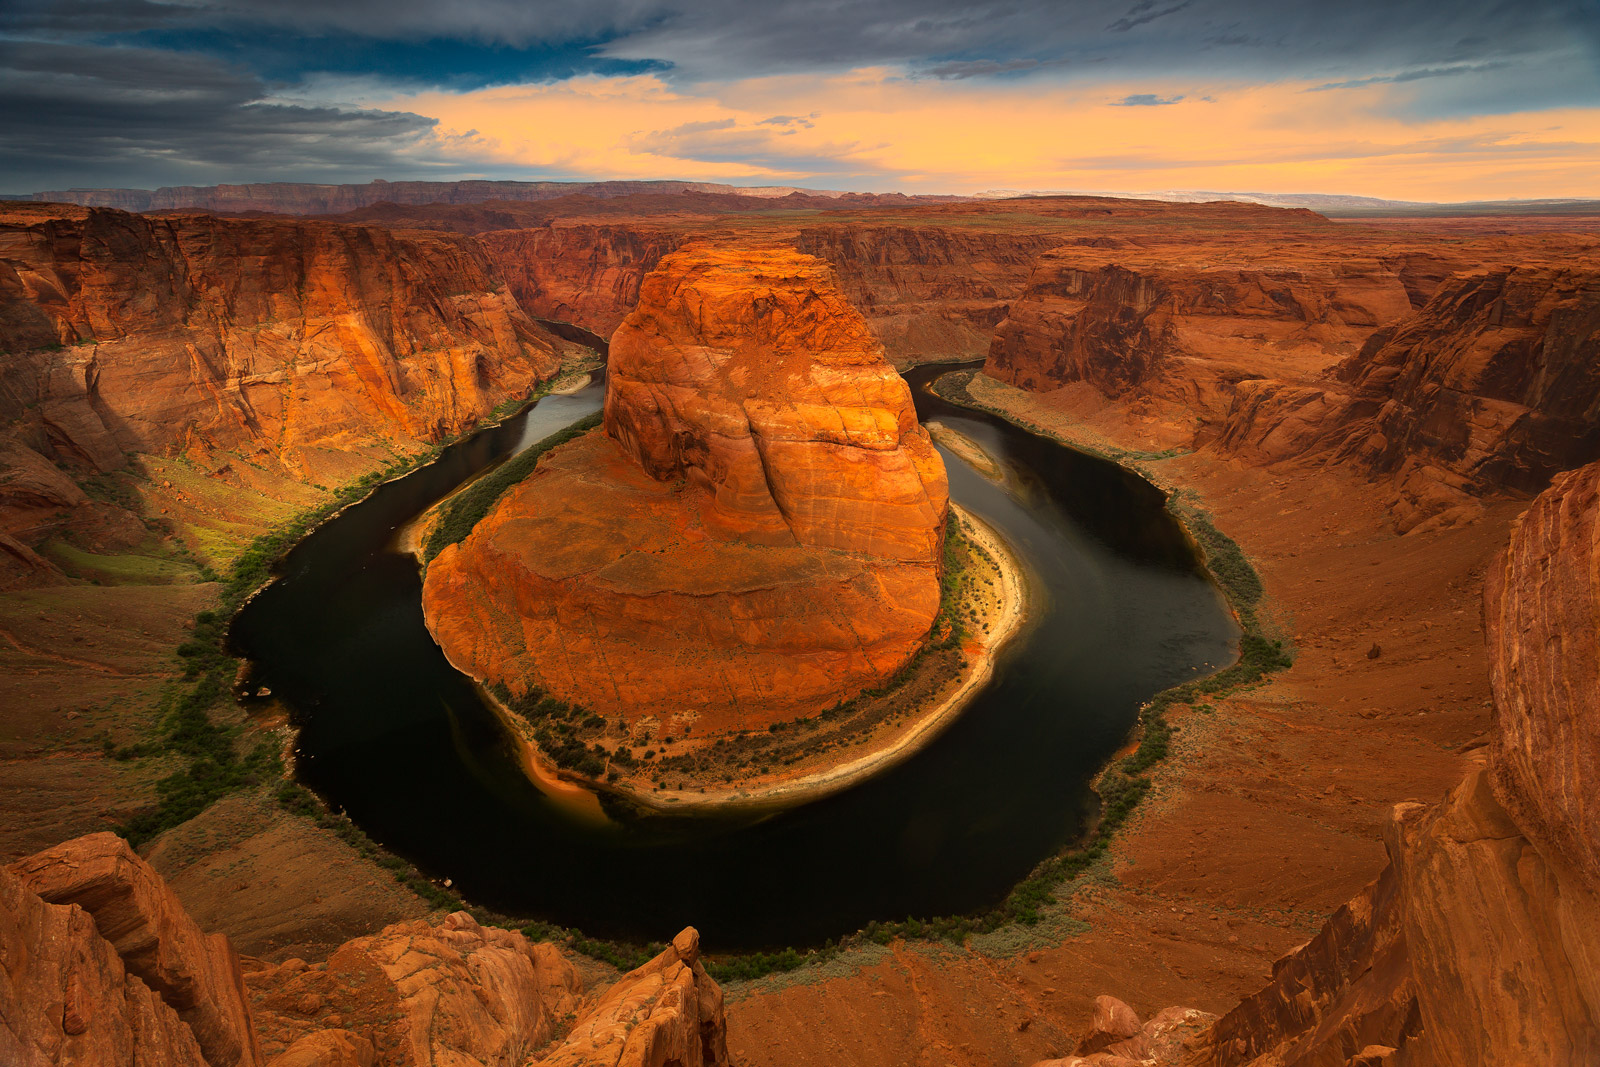 Arizona, Colorado River, Horsehoe Bend, limited edition, photograph, fine art, landscape, red rock, photo